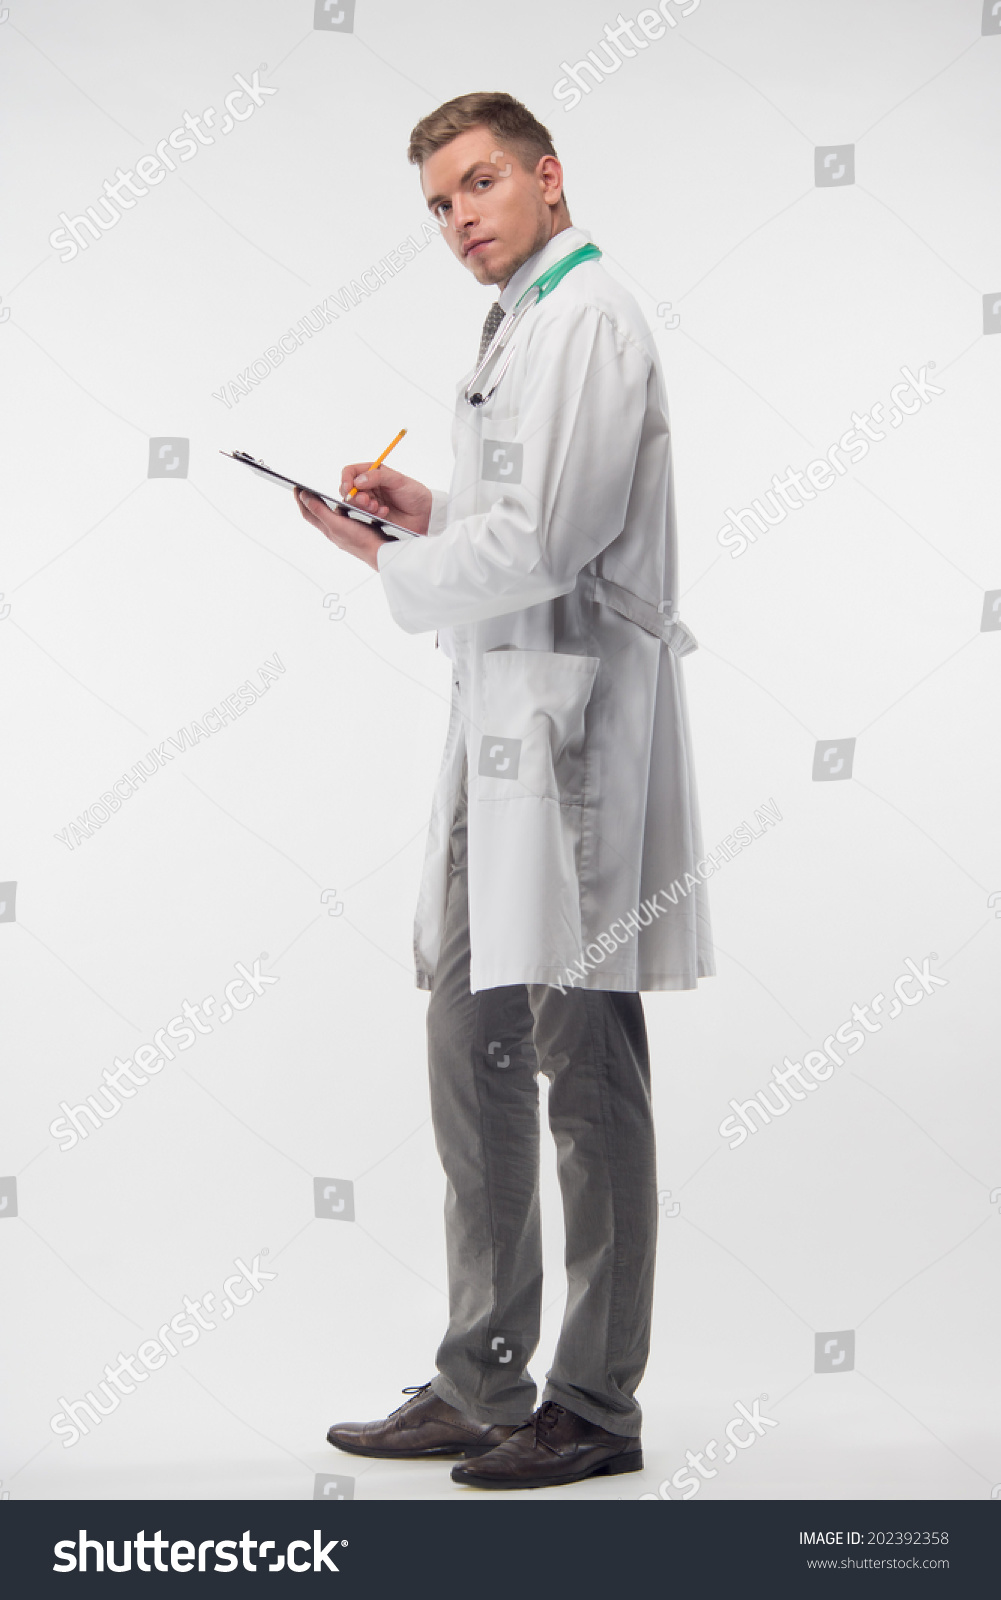 Full Length Portrait Of Very Attractive Doctor Wearing White Coat